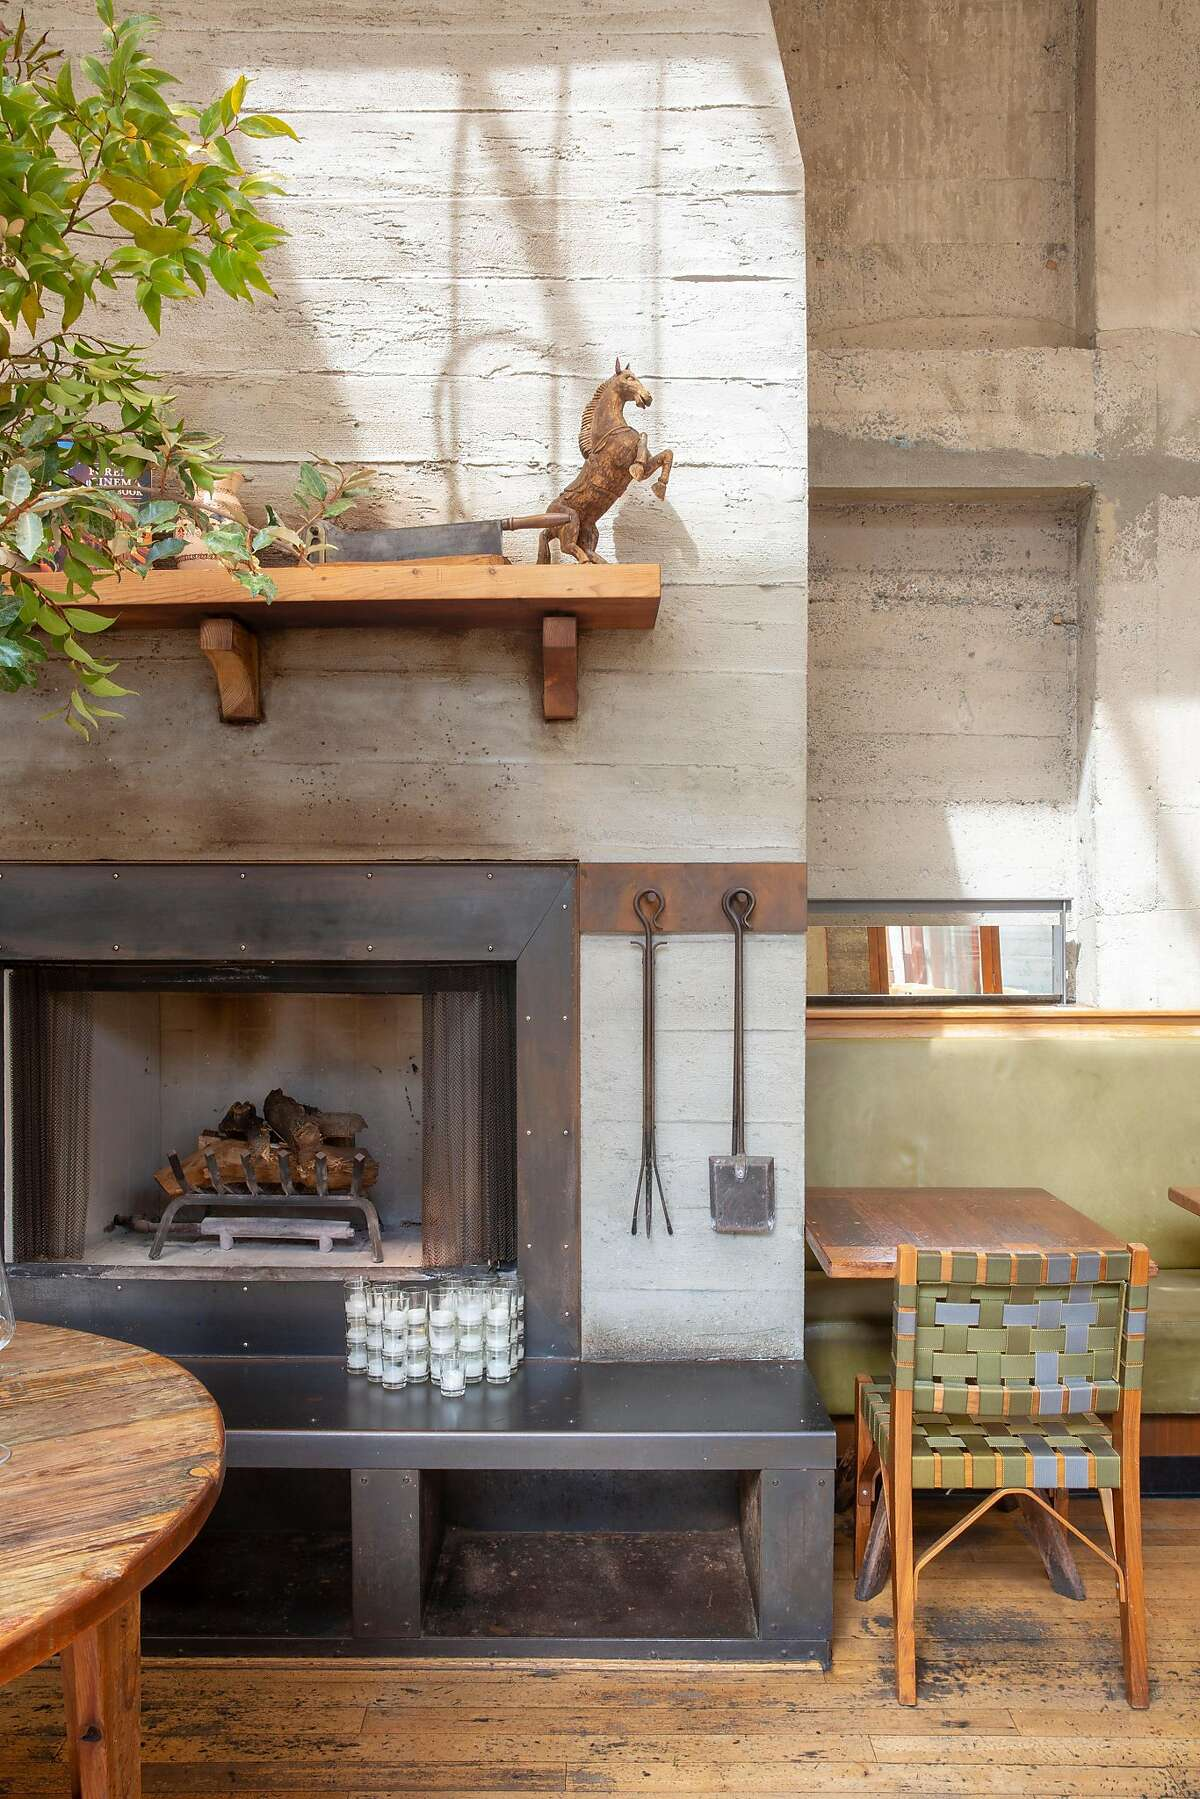 The wood fired hearth in the main dining area in Foreign Cinema at 2534 Mission St, San Francisco